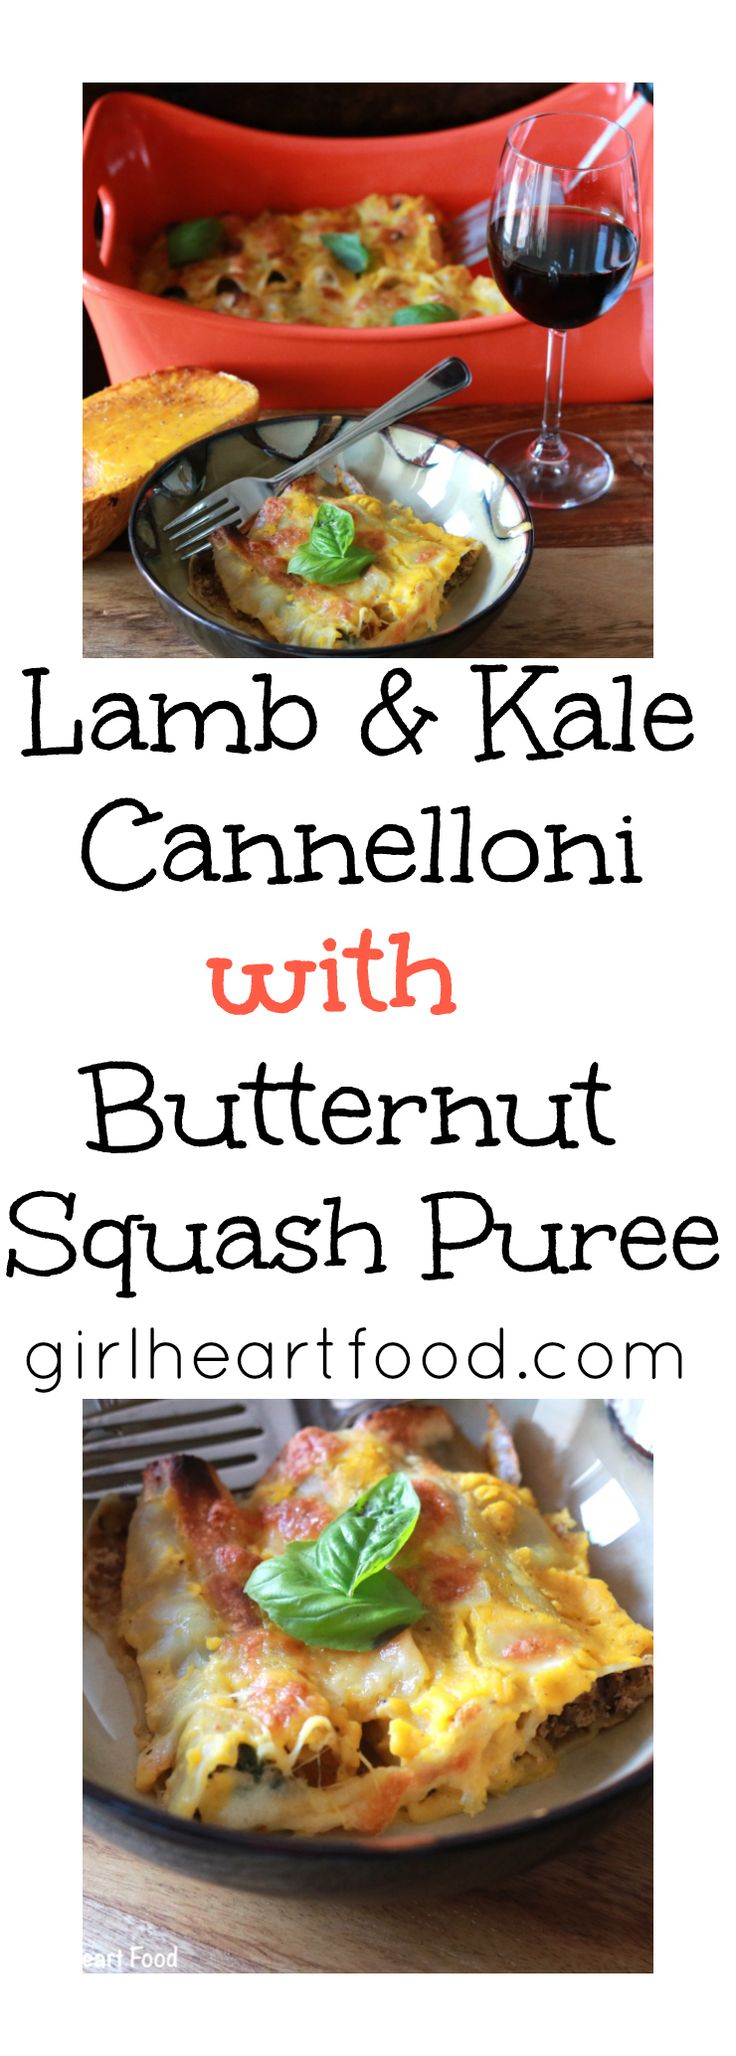 Lamb & Kale Cannelloni with Butternut Squash Puree - girlheartfood.com